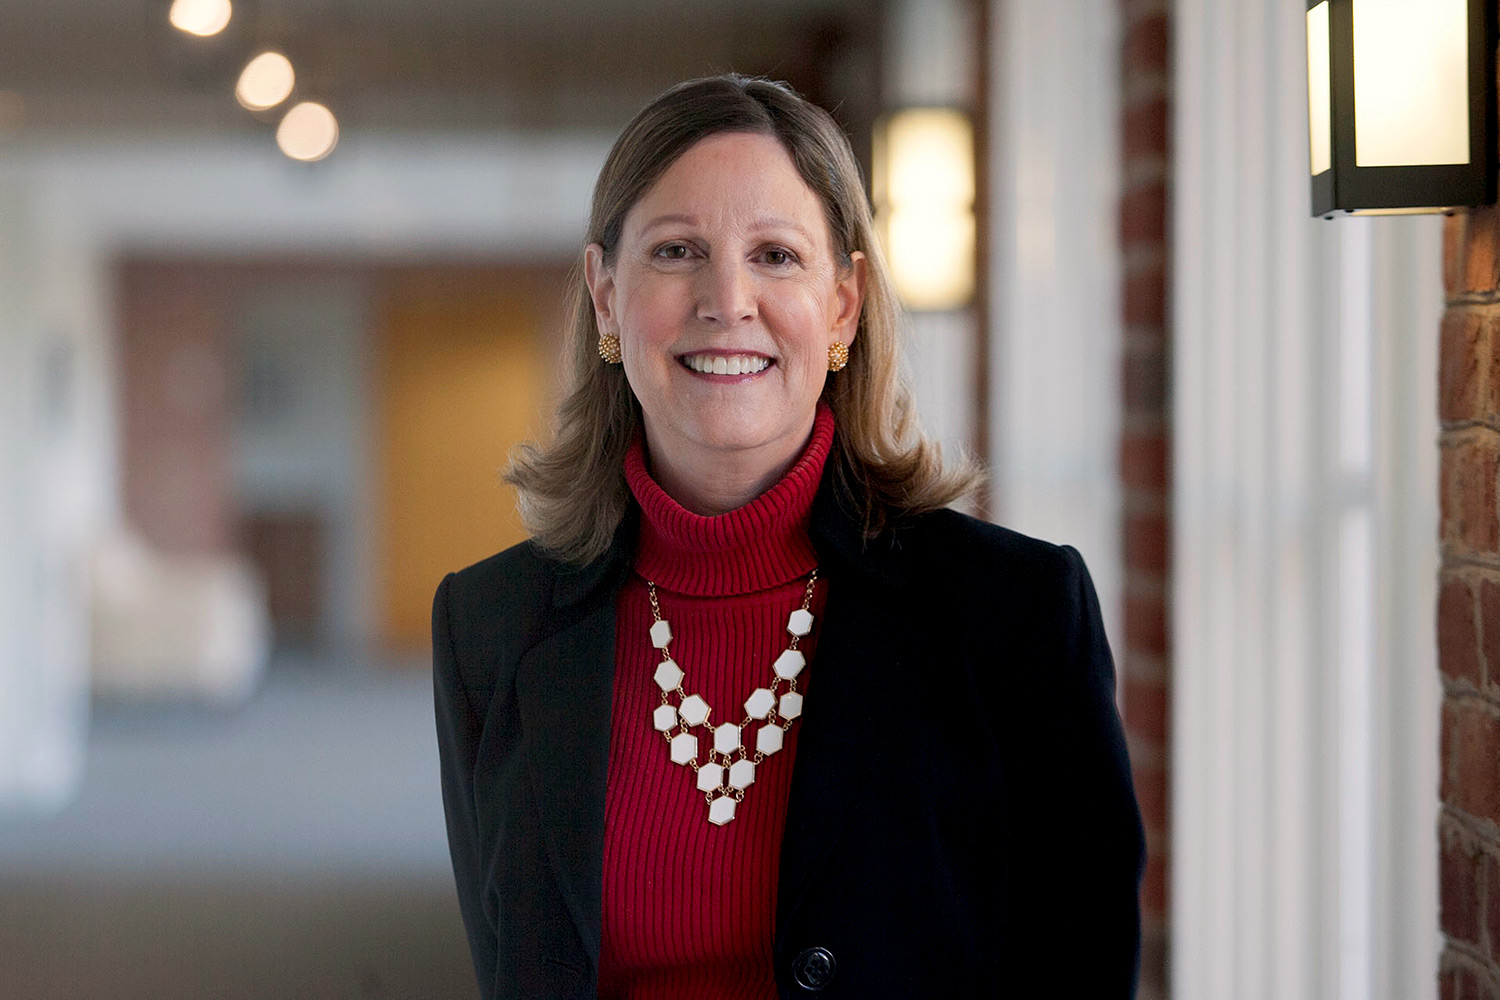 Barbara Perry is the director of presidential studies at the University of Virginia's Miller Center and co-chair of the Presidential Oral History program.